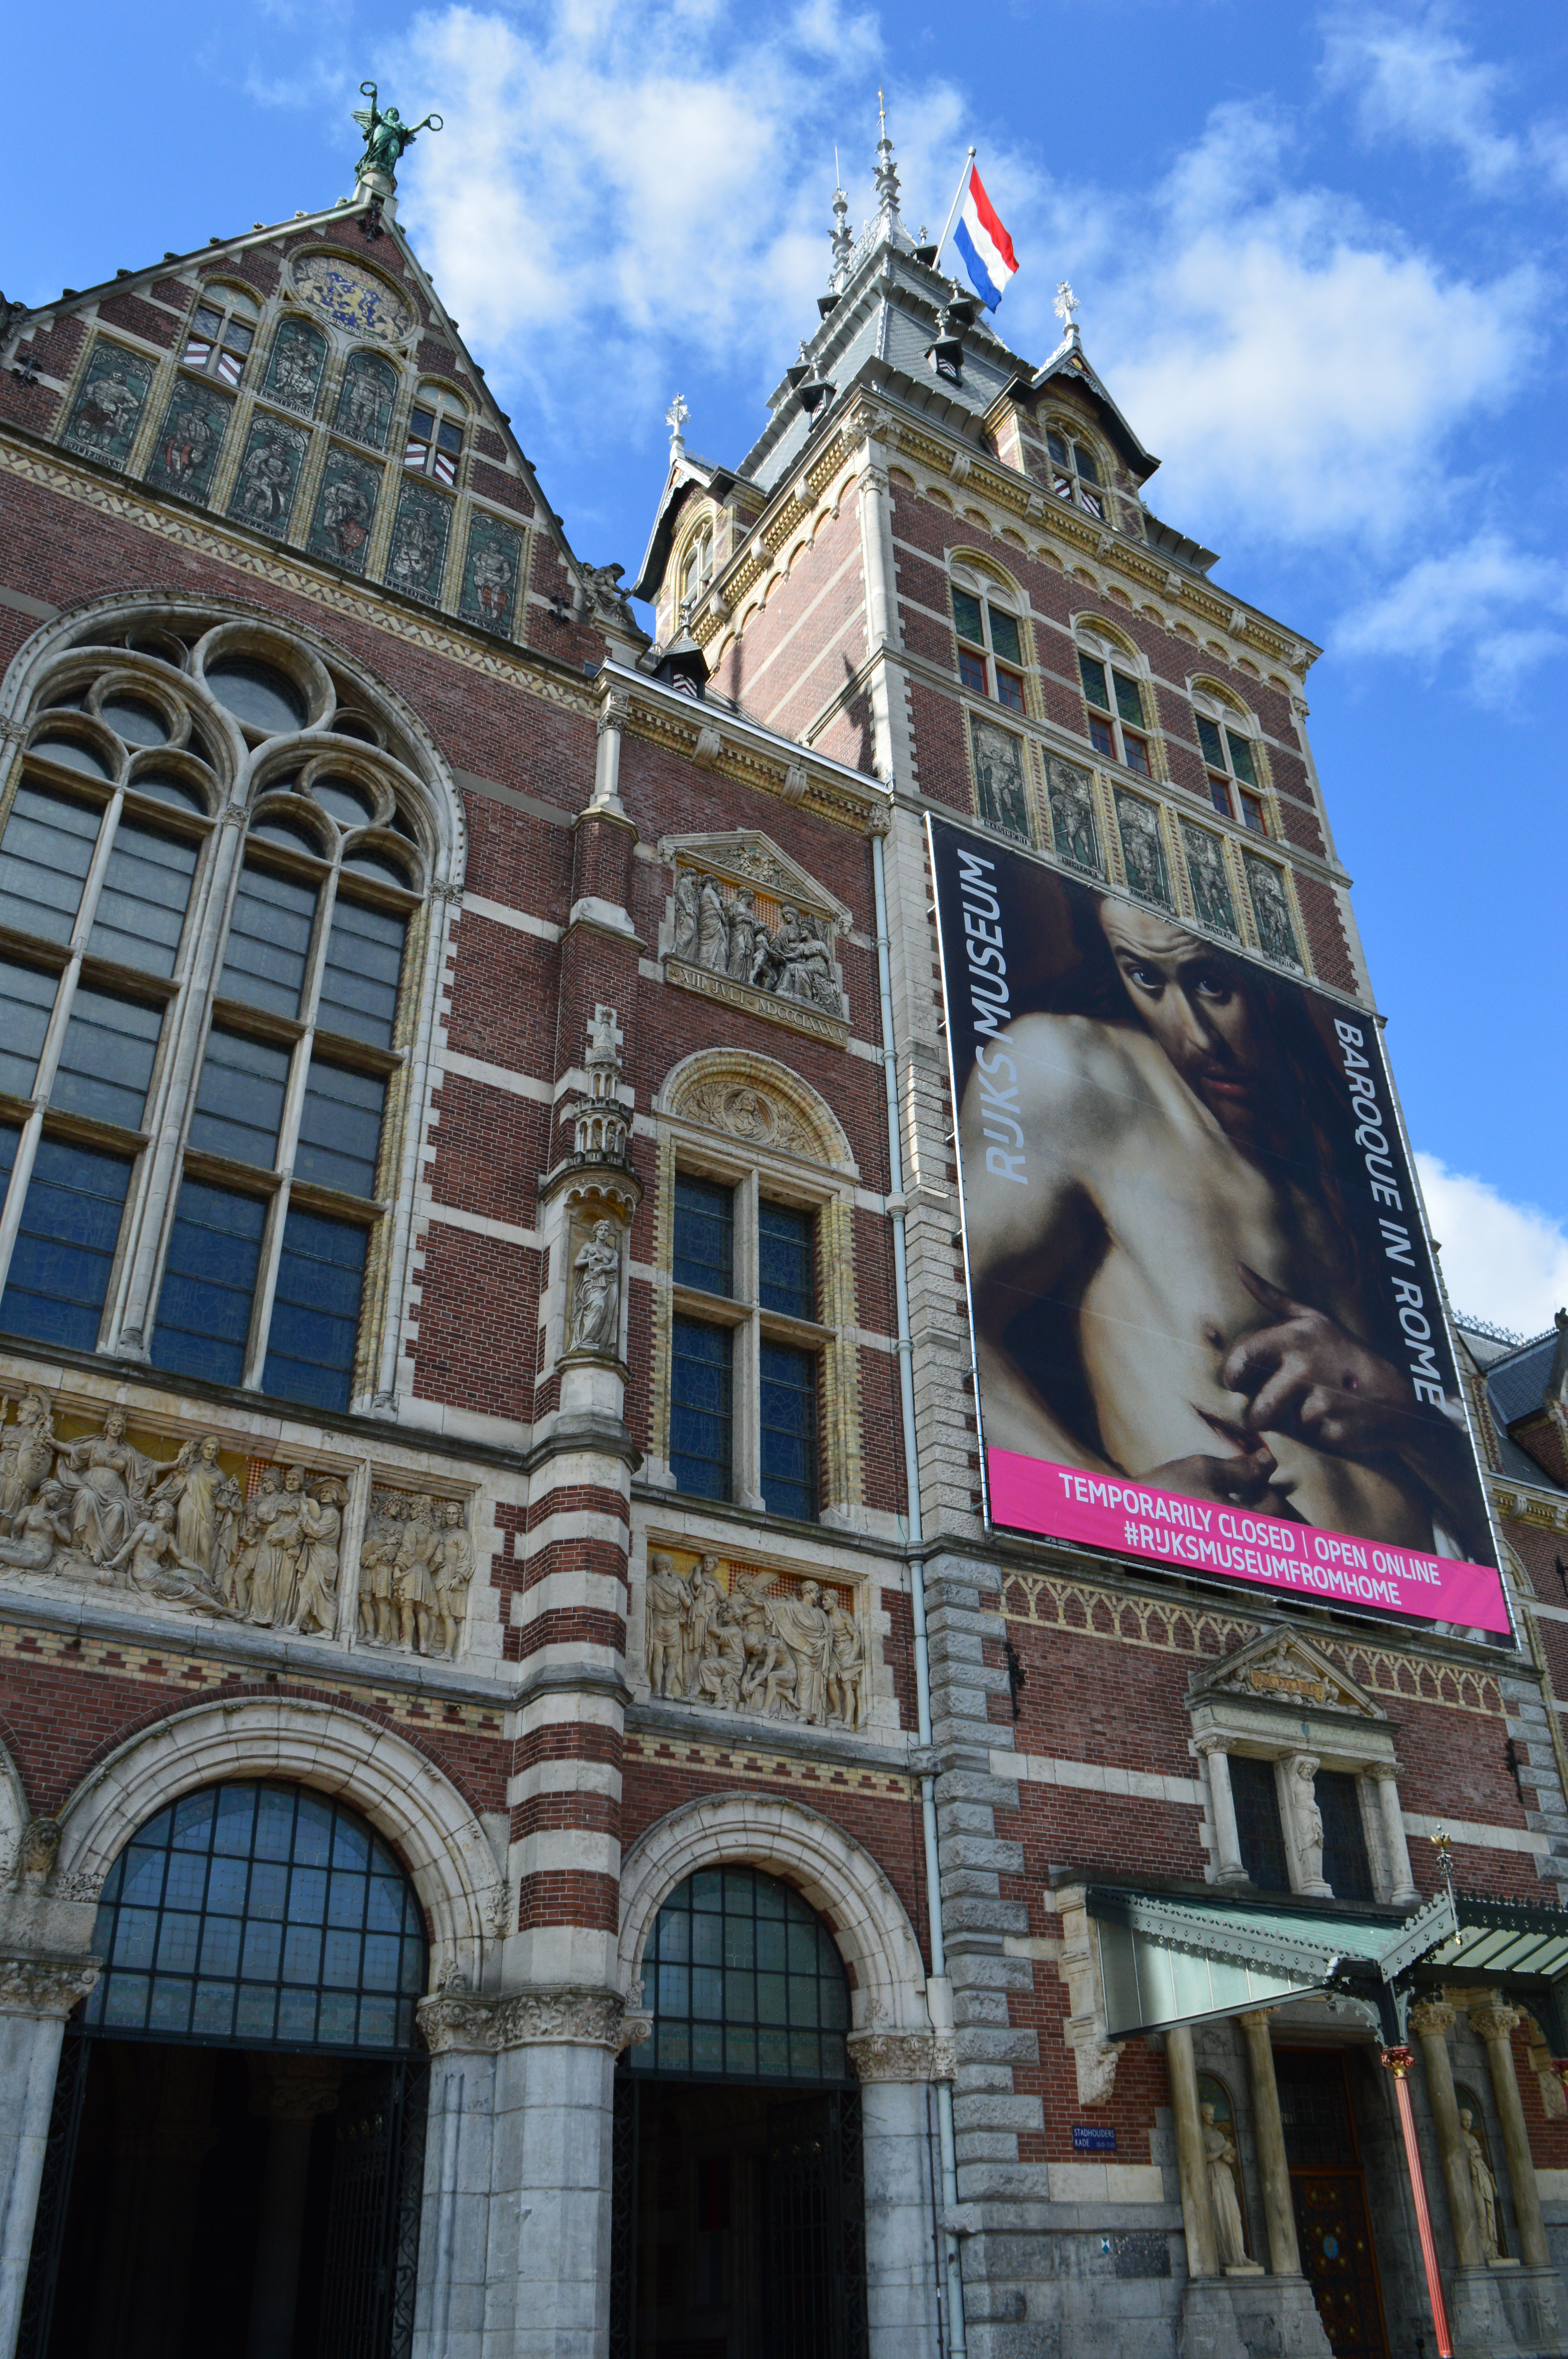 a sunny day at the rijksmuseum in Amsterdam